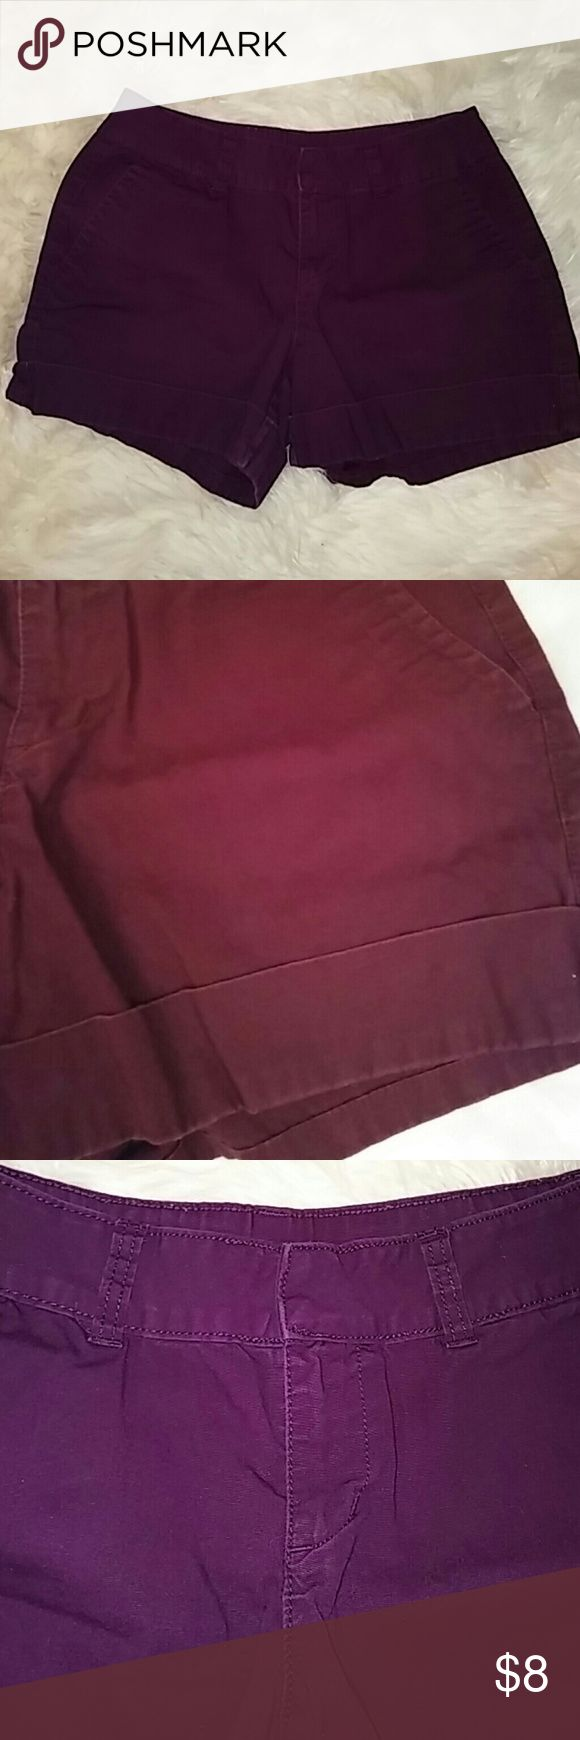 Apt 9 Size 6 Womens Purple Shorts Good pre-owned condition. Shows some fading. Comes from a smoke free home. Apt. 9 Shorts